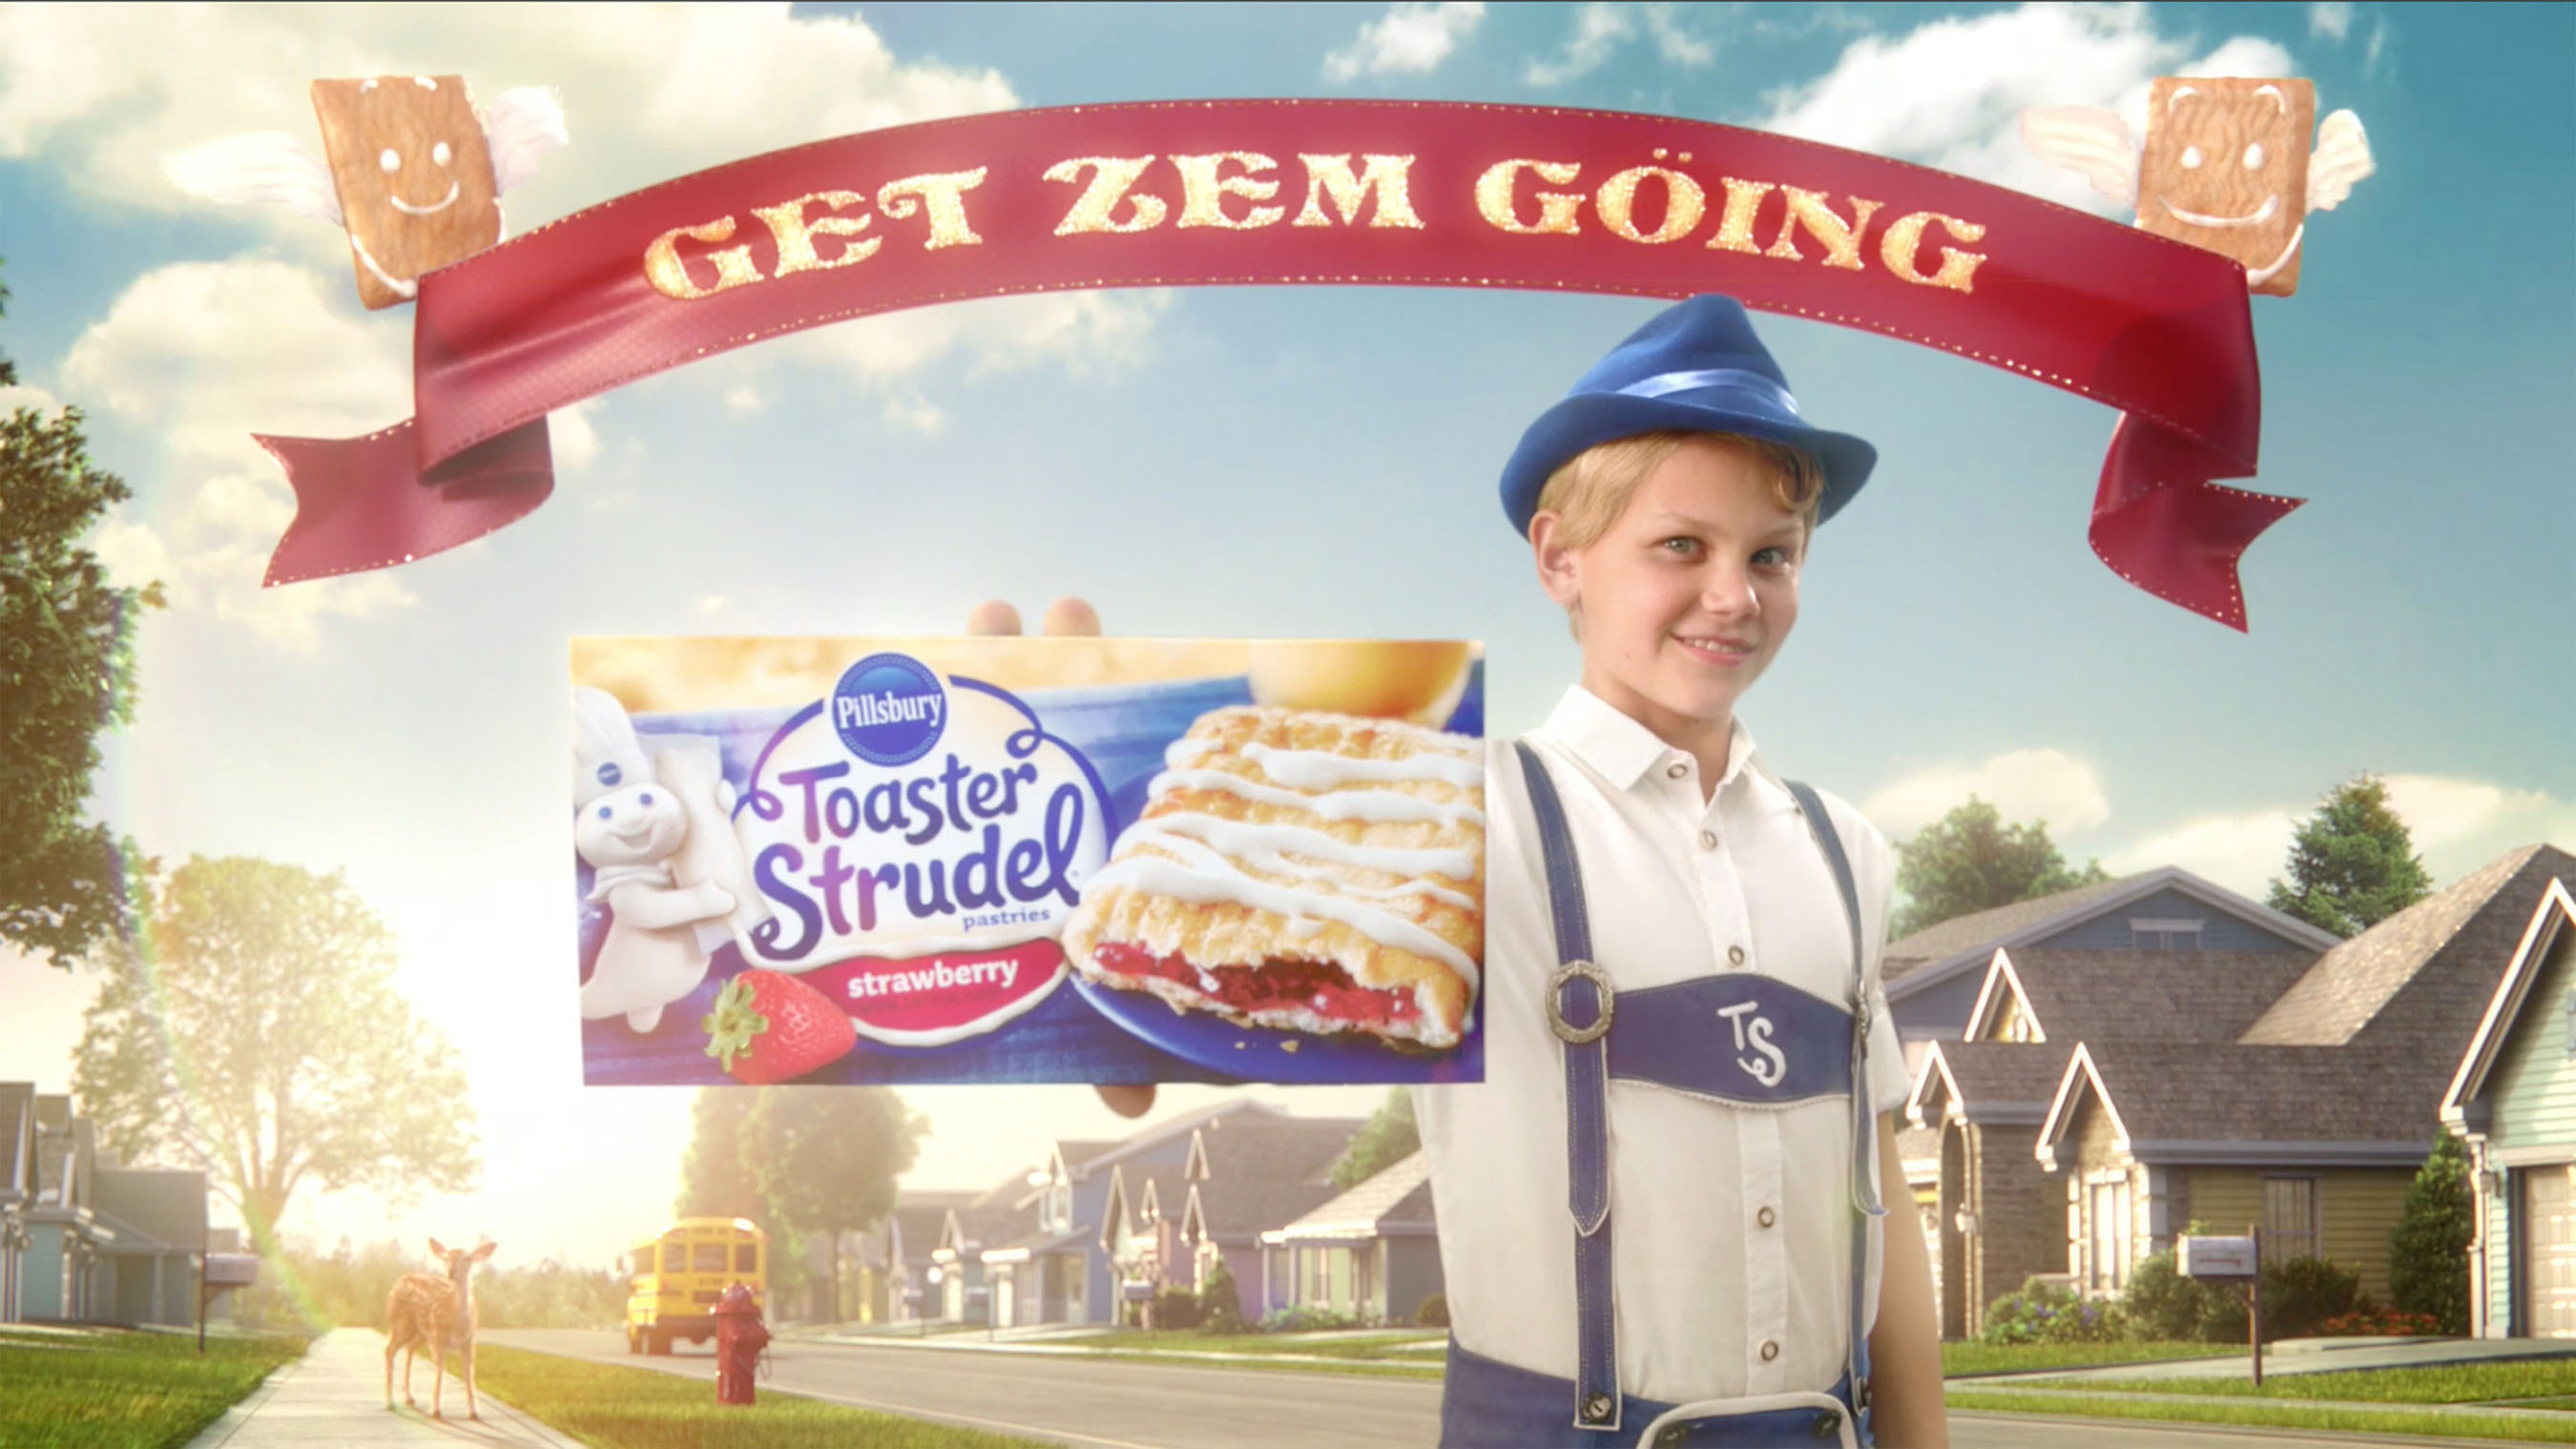 "The new face of Pillsbury Toaster Strudel, Hans Strudel, helps ""Get Zem Going!"".  (PRNewsFoto/Pillsbury Toaster Strudel)"